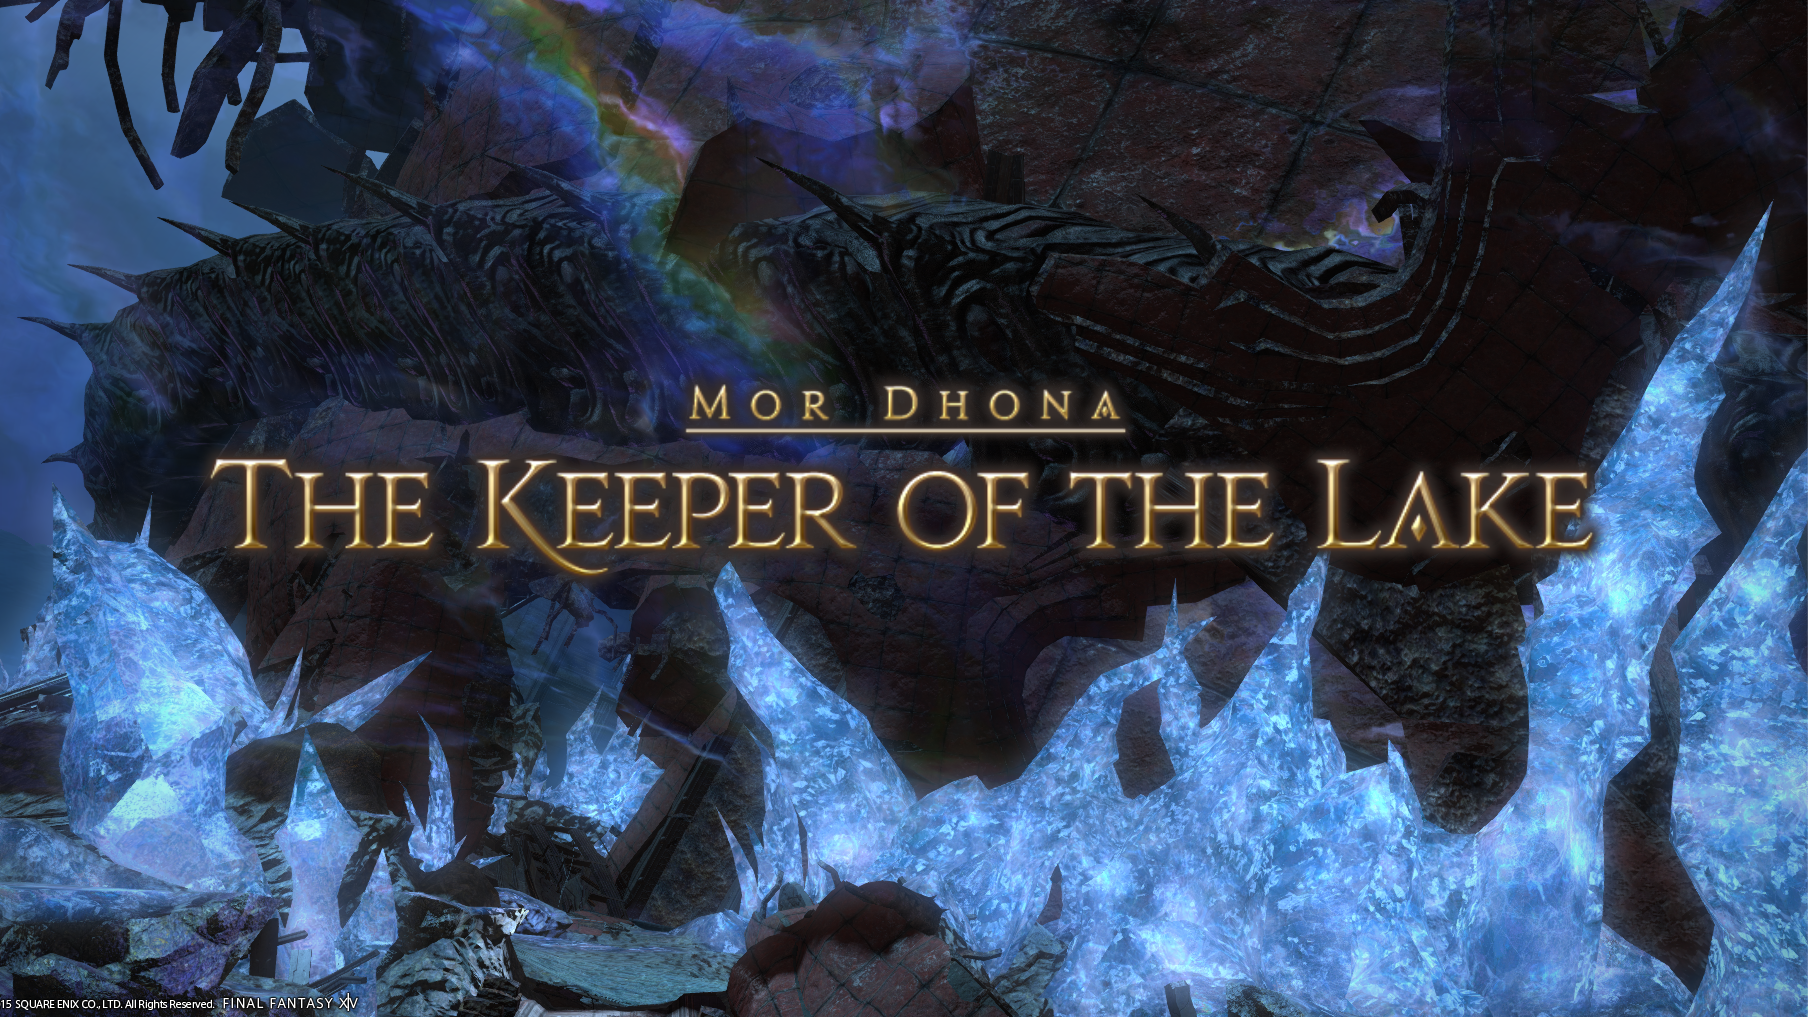 Keeper of the Lake | Final Fantasy Wiki | FANDOM powered by